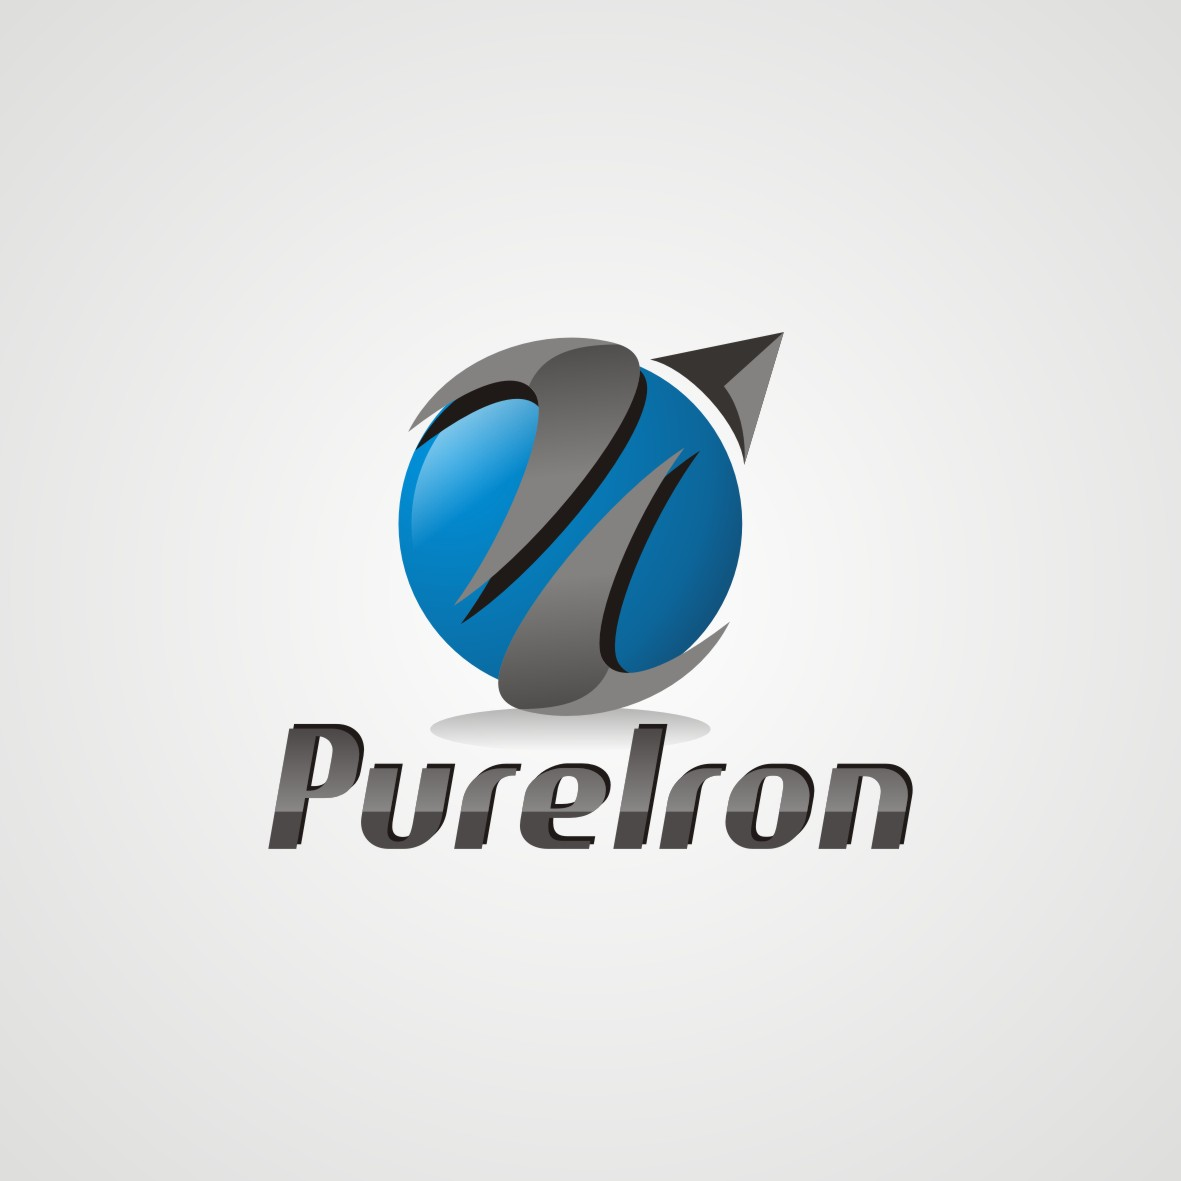 Logo Design by arteo_design - Entry No. 146 in the Logo Design Contest Fun Logo Design for Pure Iron.